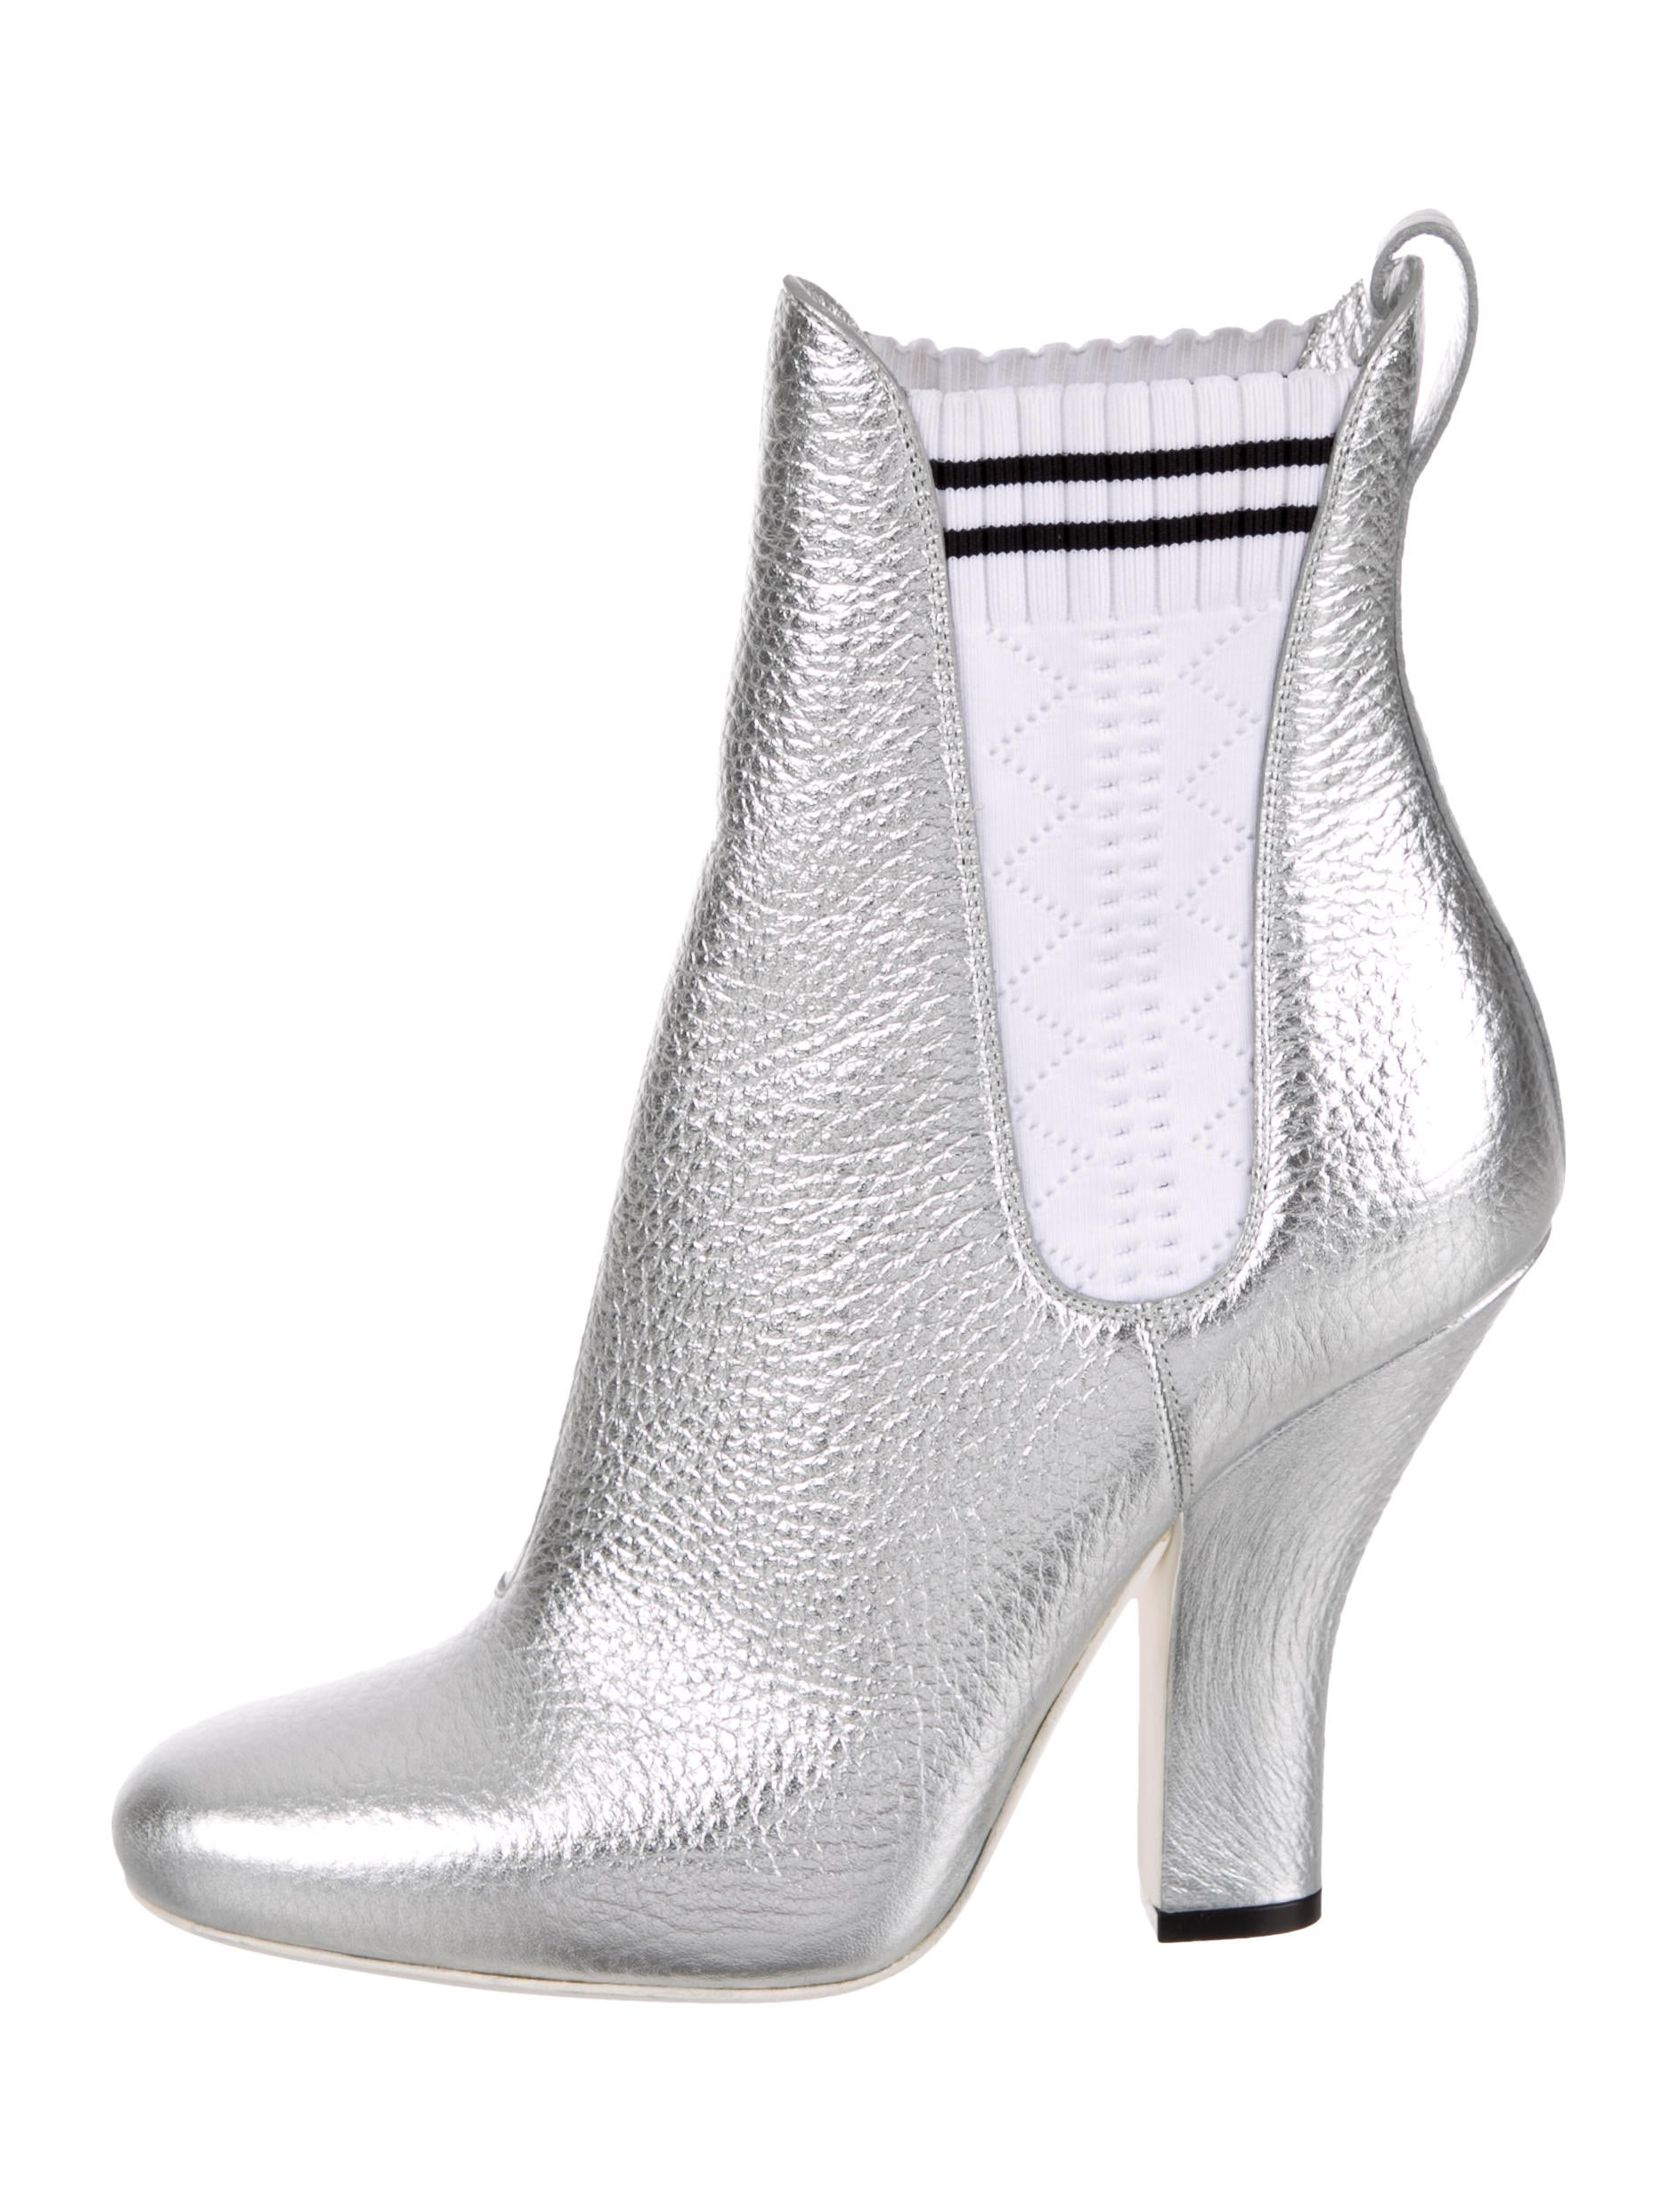 Fendi Antoinette Ankle Boots w/ Tags buy cheap new arrival gsyeZV6a